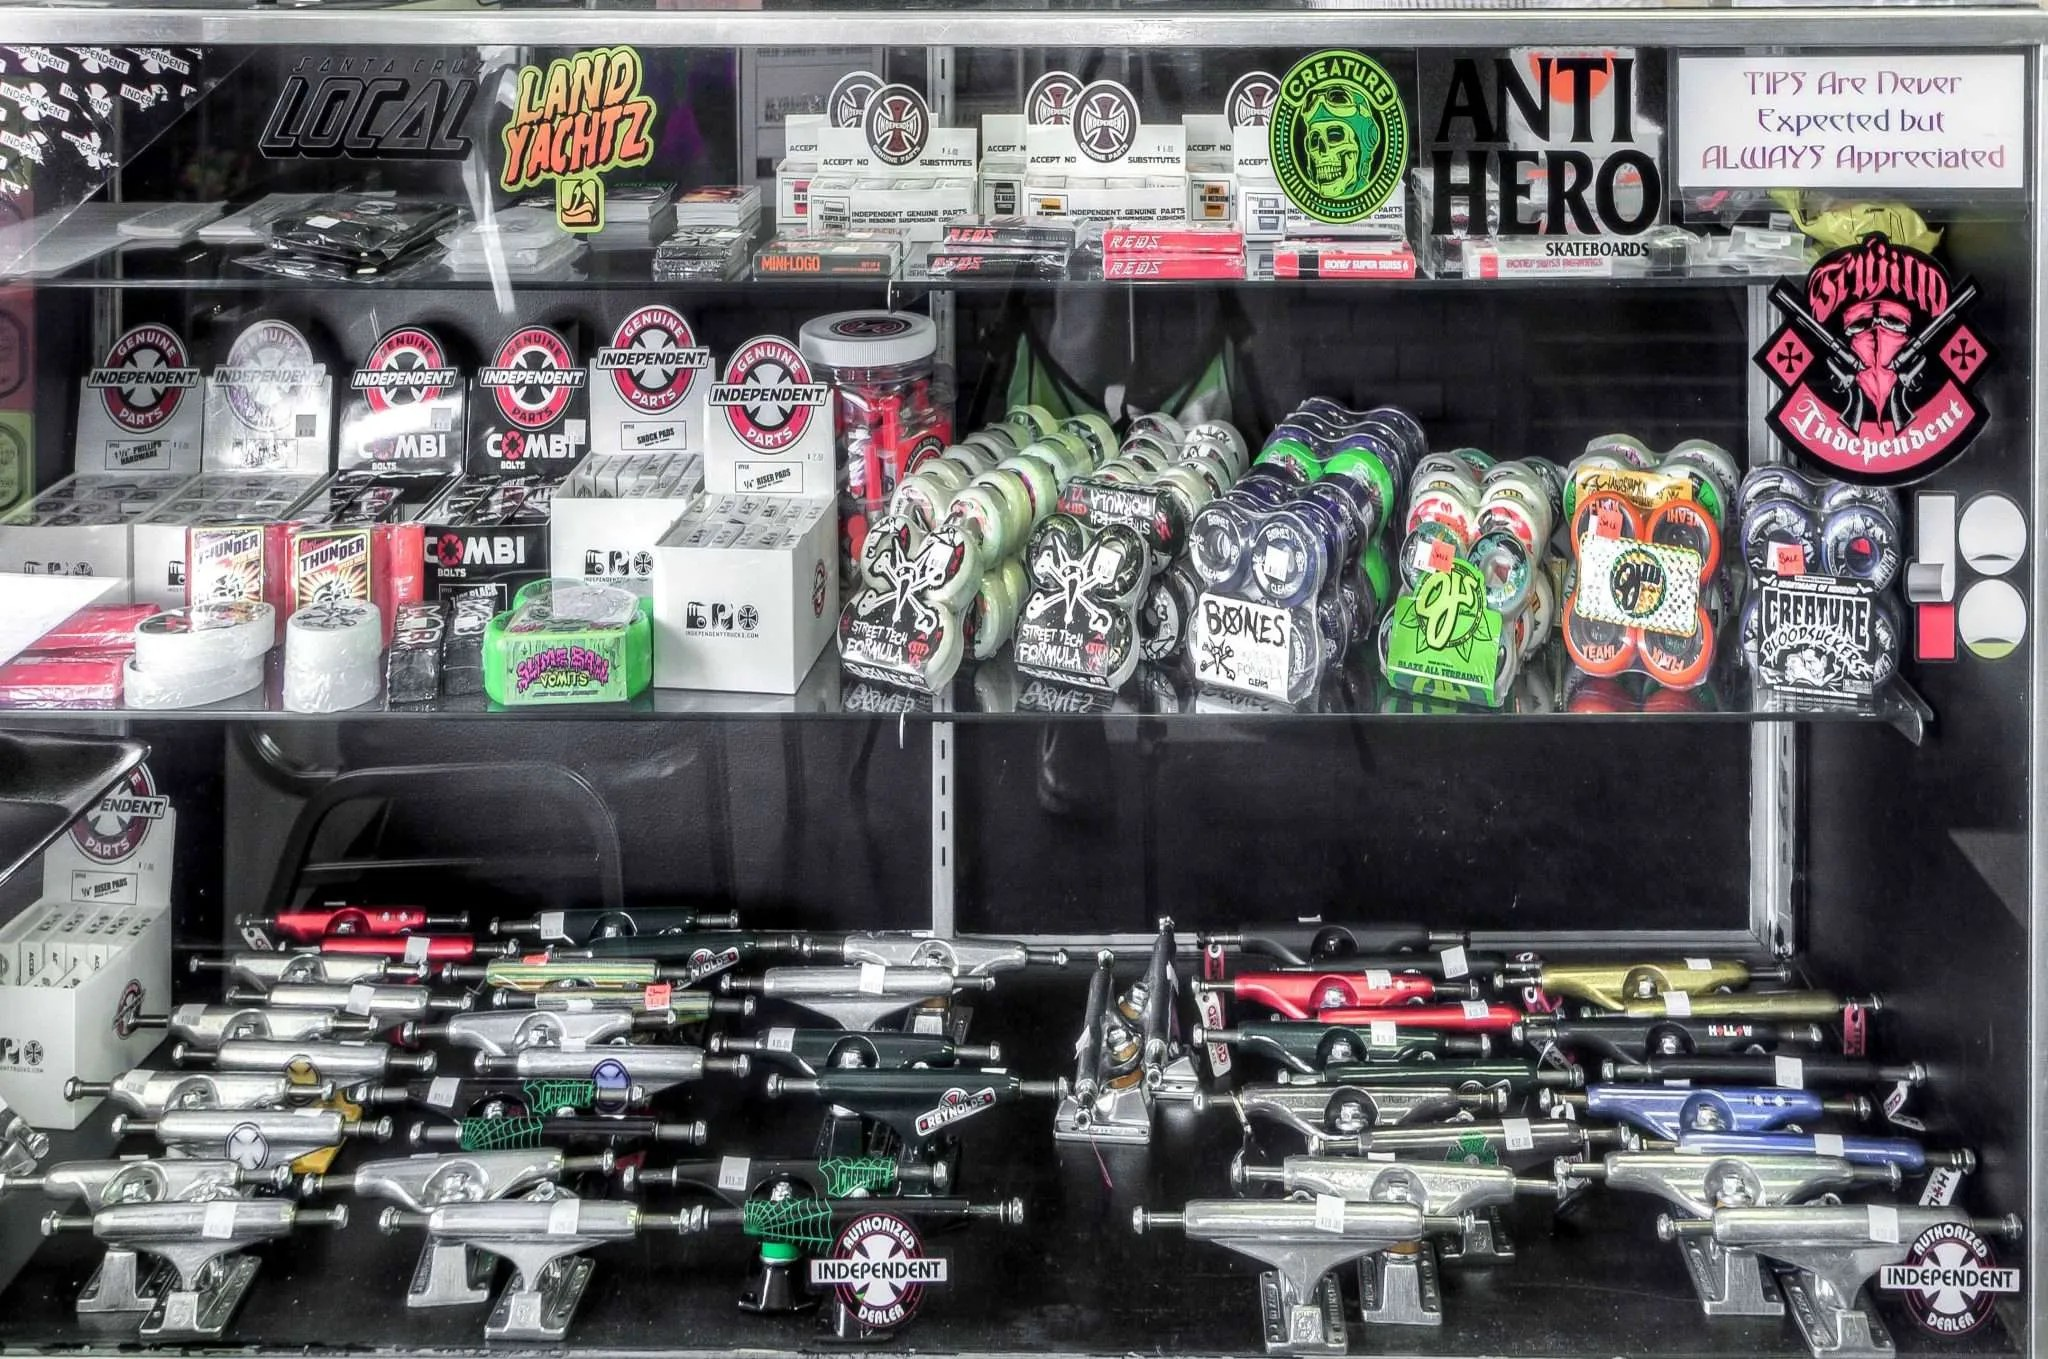 Wheels, trucks, bearings, and more.